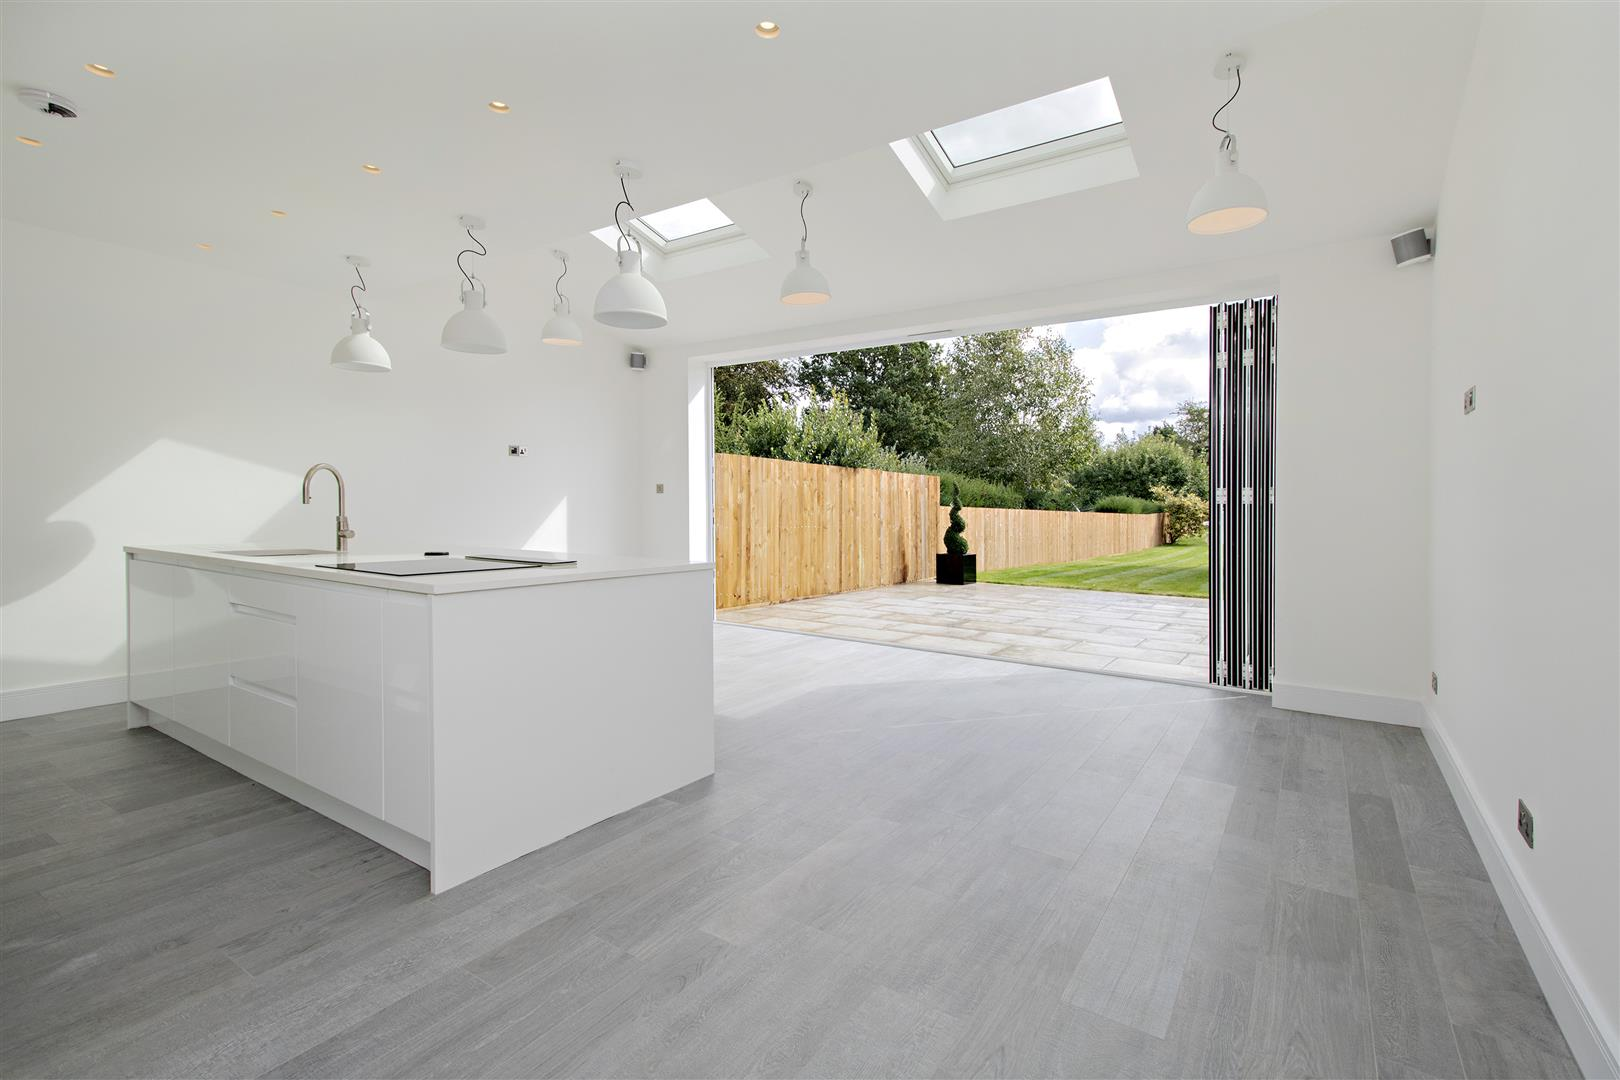 4 bed to rent in Loom Lane, Radlett - (Property Image 2)